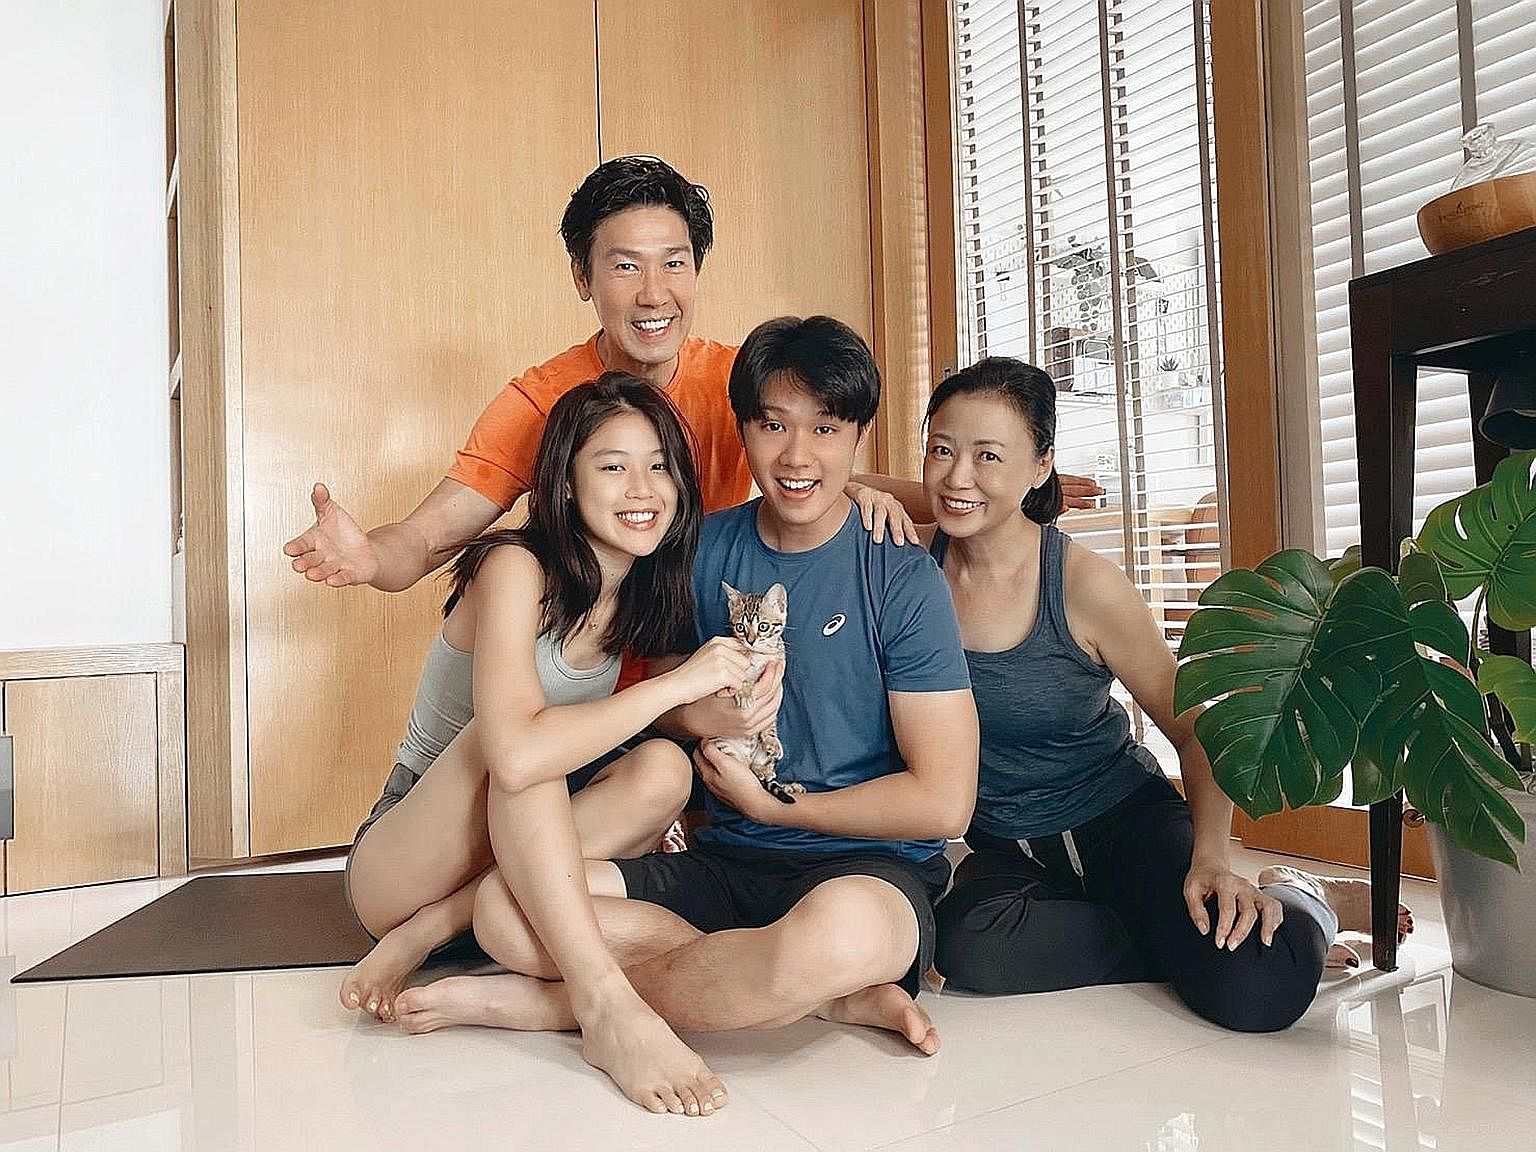 The circuit breaker kick-started a health drive for Xiang Yun, Edmund Chen and their son Yixi and daughter Yixin.